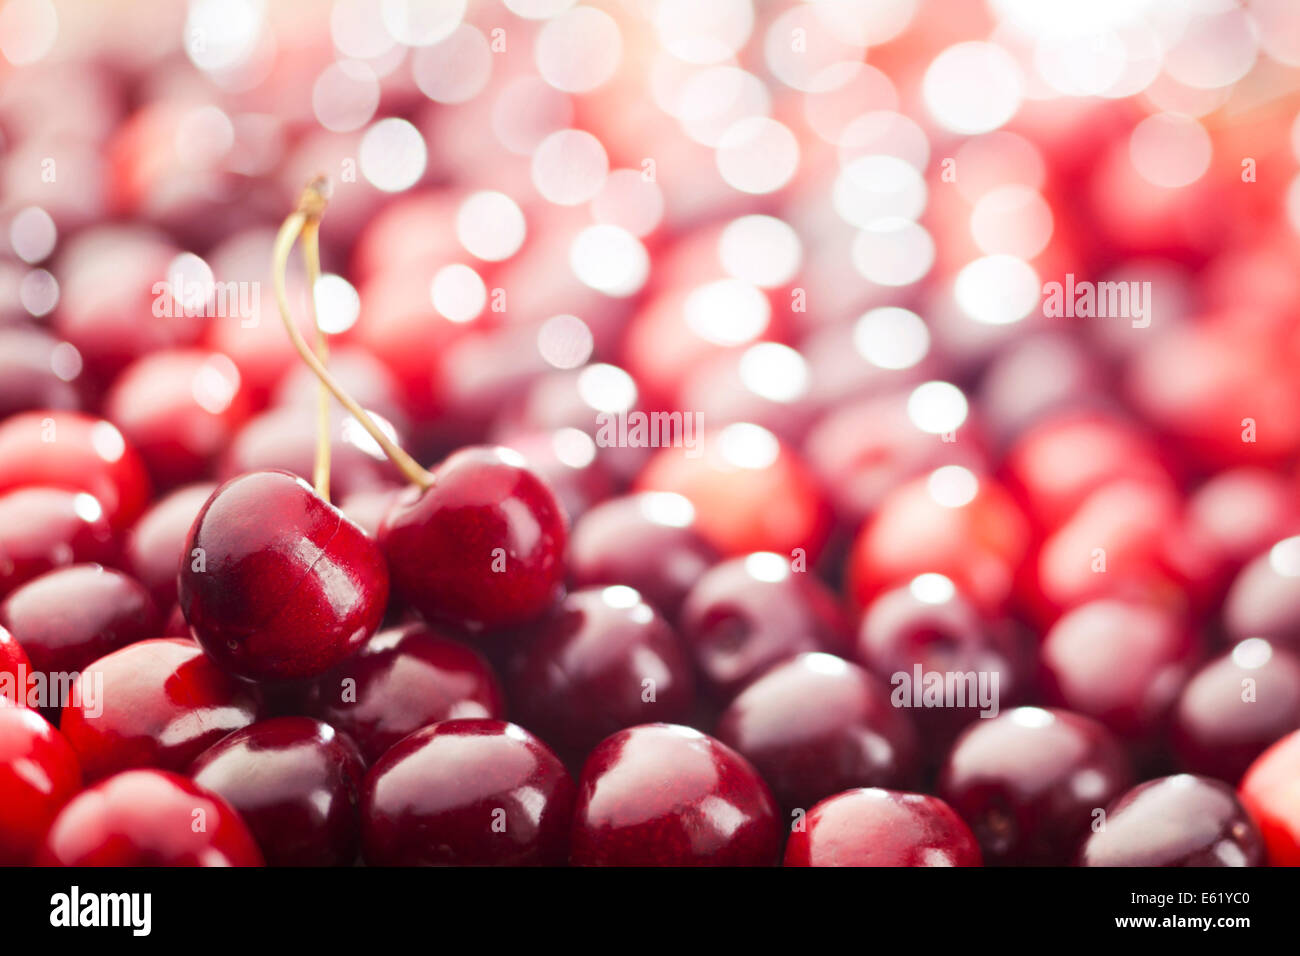 Red cherries background. Shallow depth of field. - Stock Image